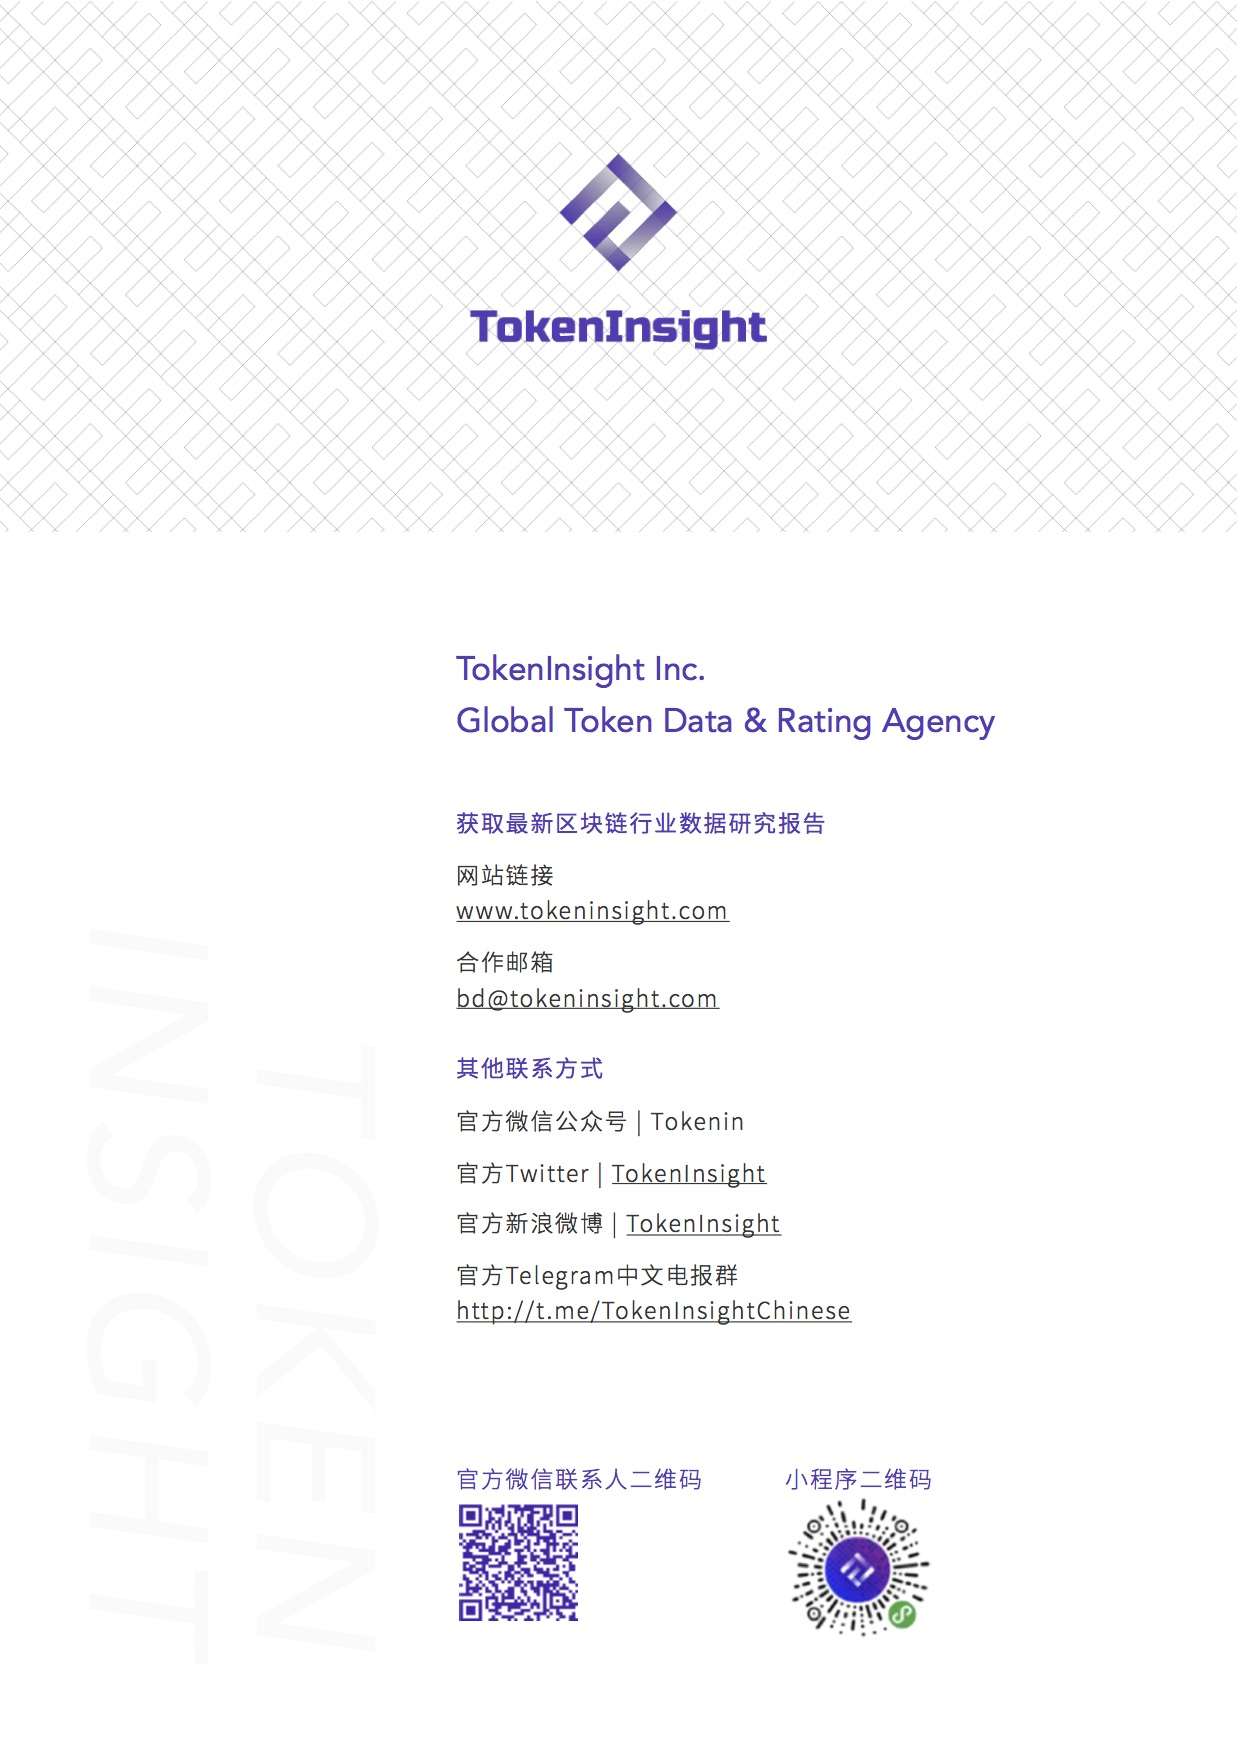 交易所流动性案例研究 | TokenInsight